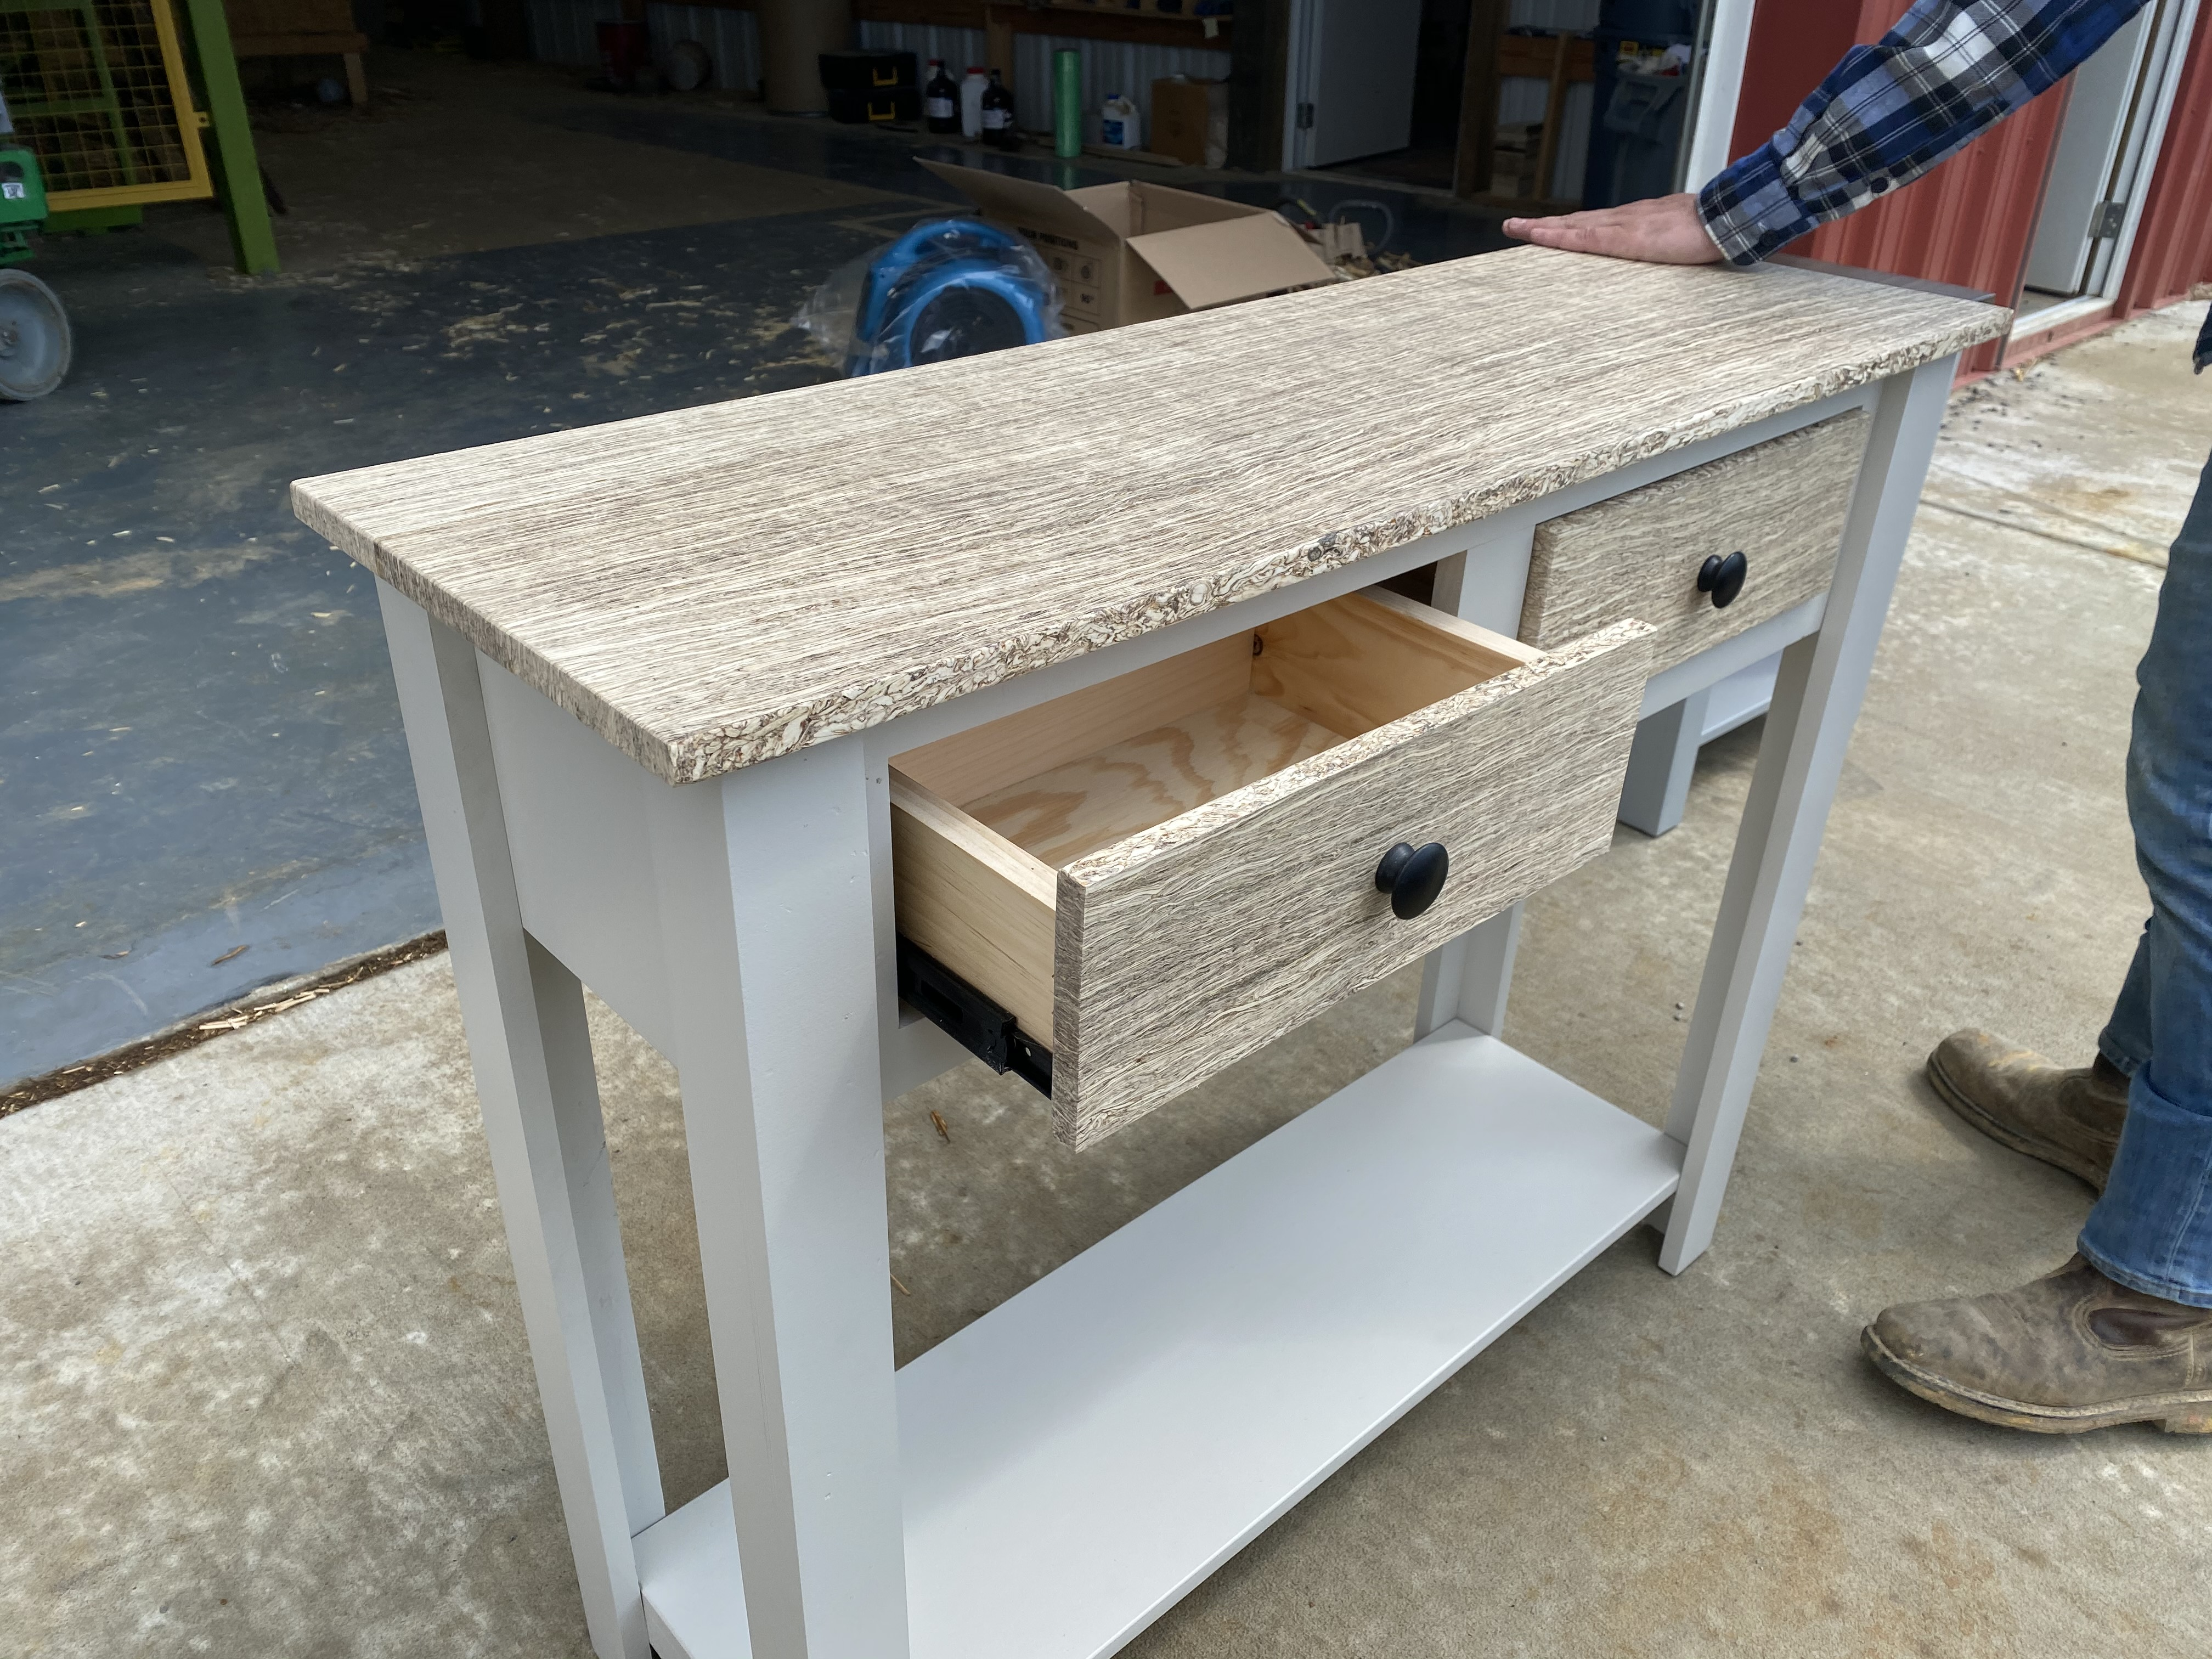 open drawer on table